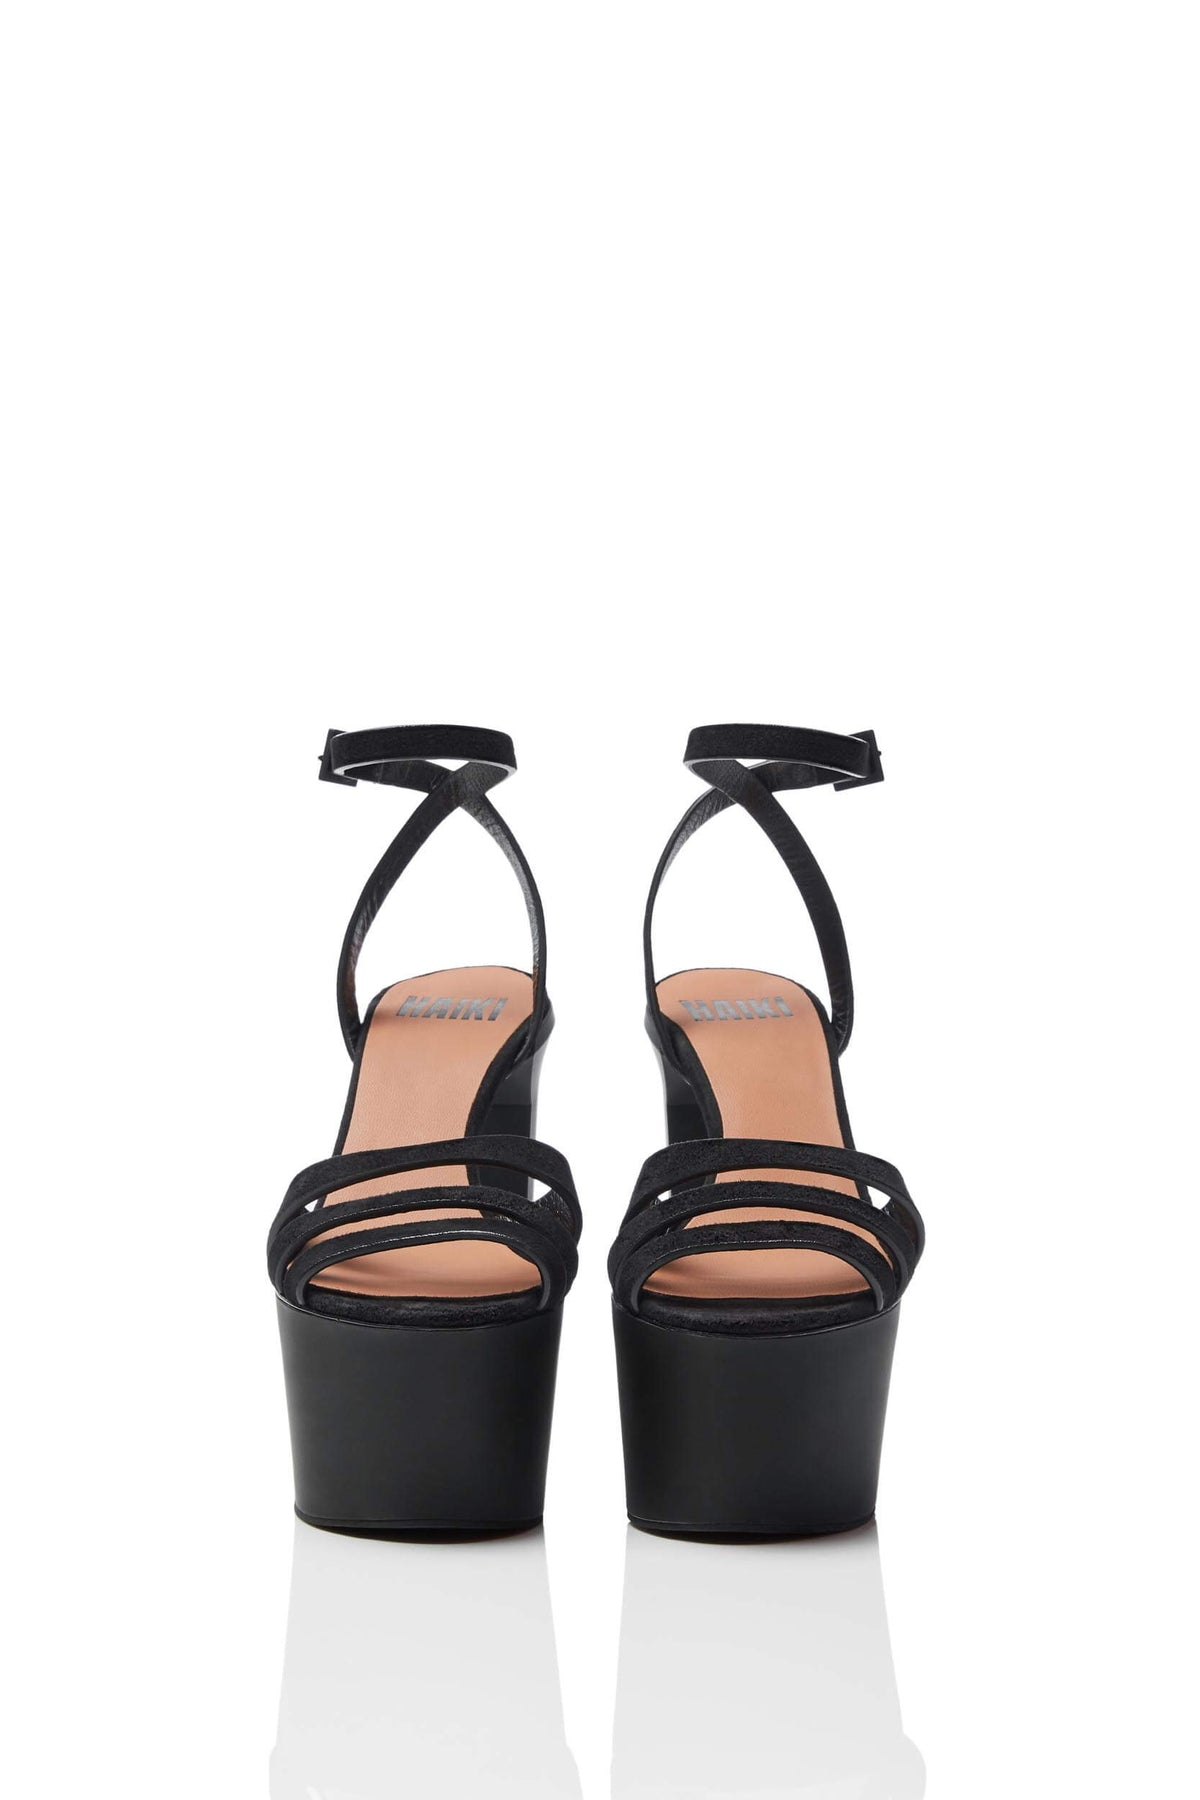 HAIKI 801 – Multi-band platform sandal with self-adjusting ankle strap. Made of Soft Kidsuede in black.